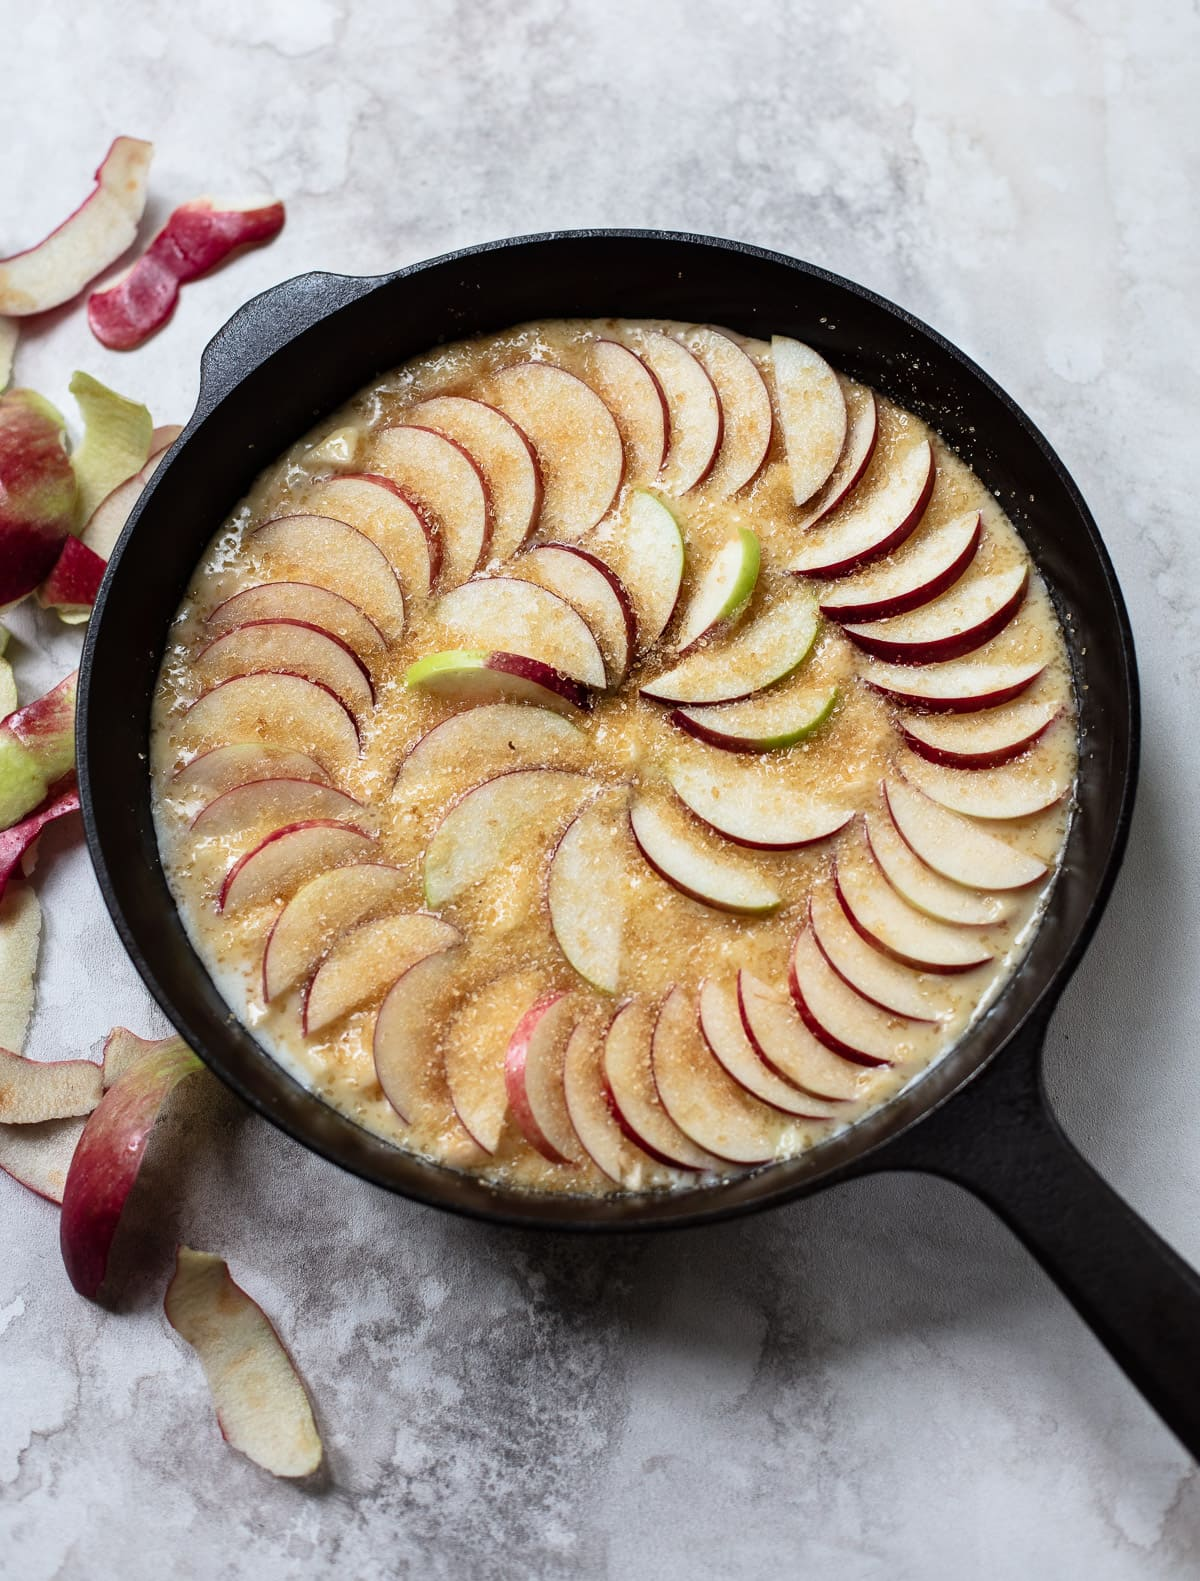 A black cast iron skillet with whiskey-infused cake, sliced apples and powdered sugar on top.